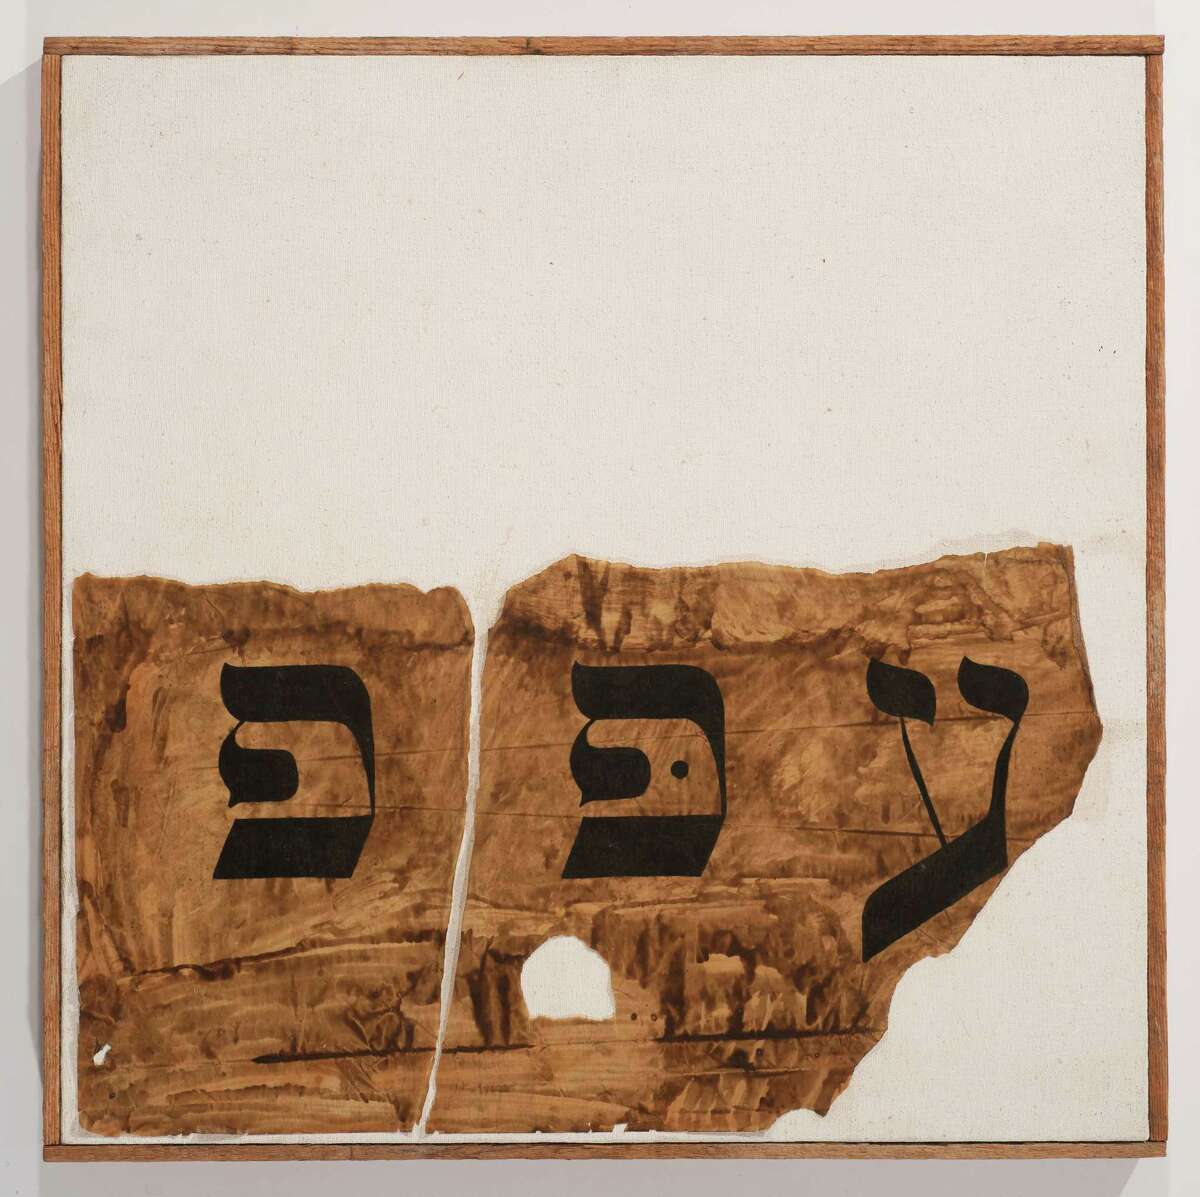 Wallace Berman, Untitled, 1956-1957. Ink and shellac on torn parchment paper on primed canvas, 19 1/2 é?- 19 1/2 in. (49.5 é?- 49.5 cm). The Menil Collection, Houston, Gift of Caroline Huber and the estate of Walter Hopps. The Estate of Wallace Berman